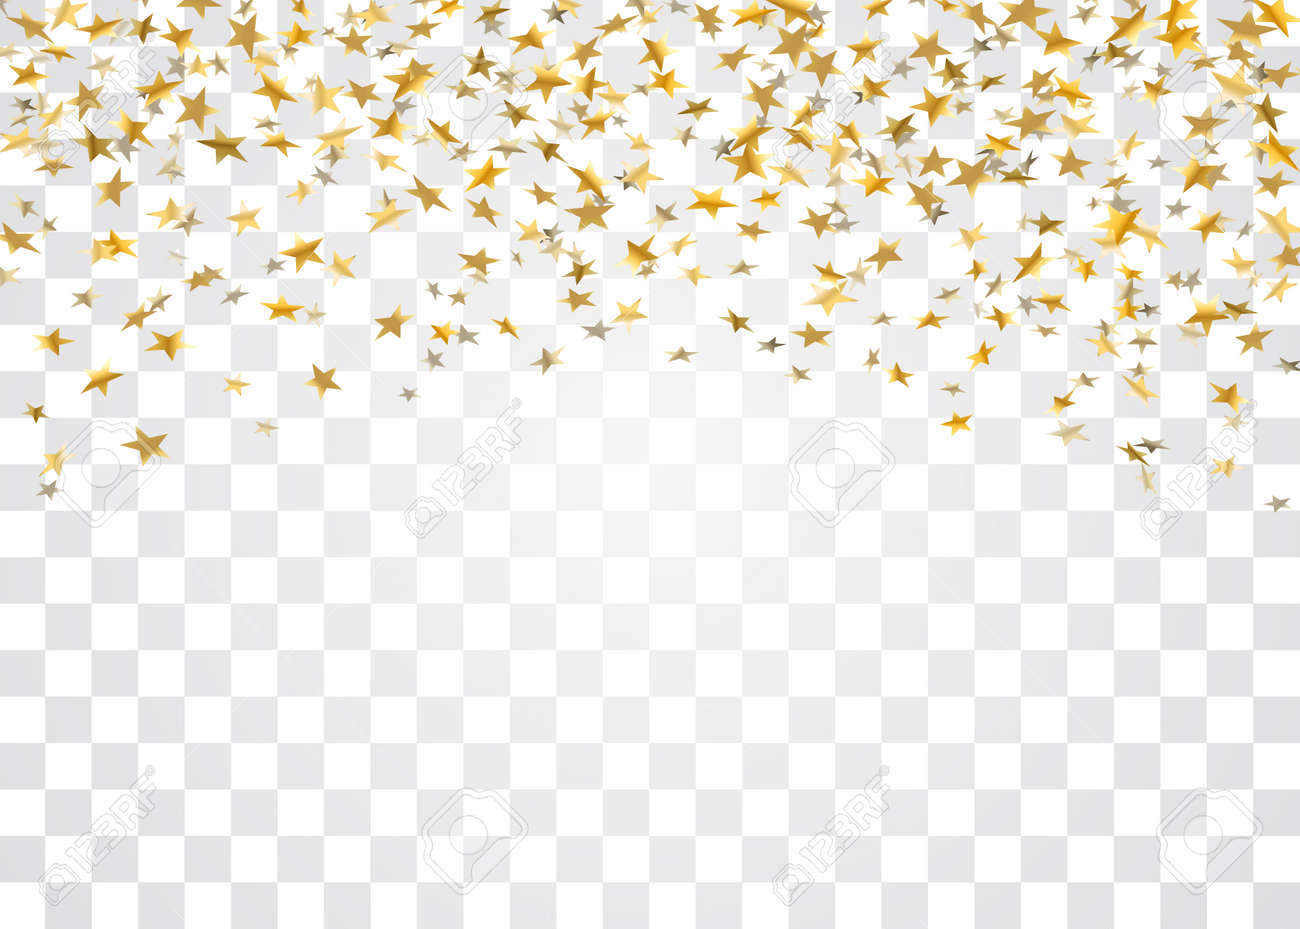 gold stars falling confetti isolated on white transparent background